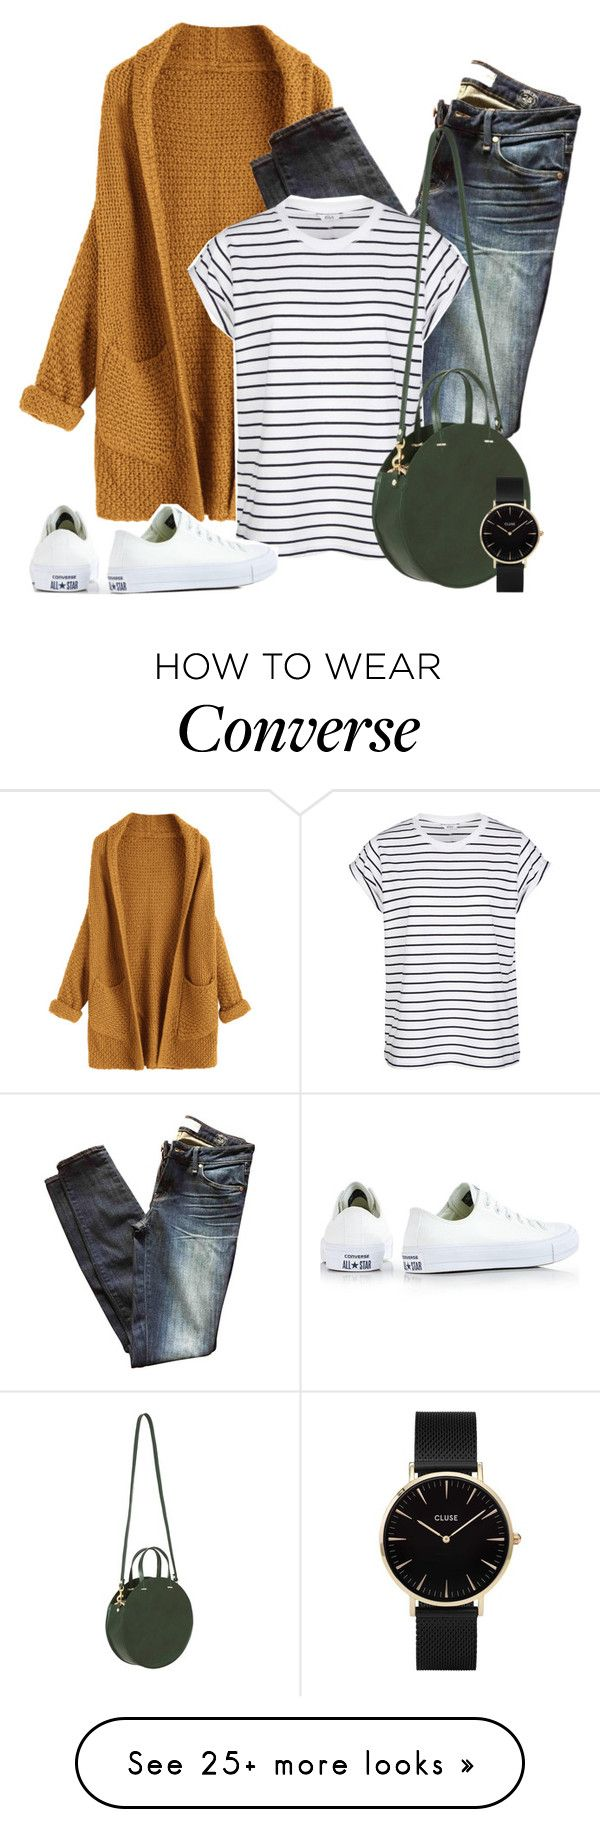 """Casual with a dash of classy"" by kingsamuel on Polyvore featuring Marc by Marc Jacobs, Clare V., CLUSE and Converse"